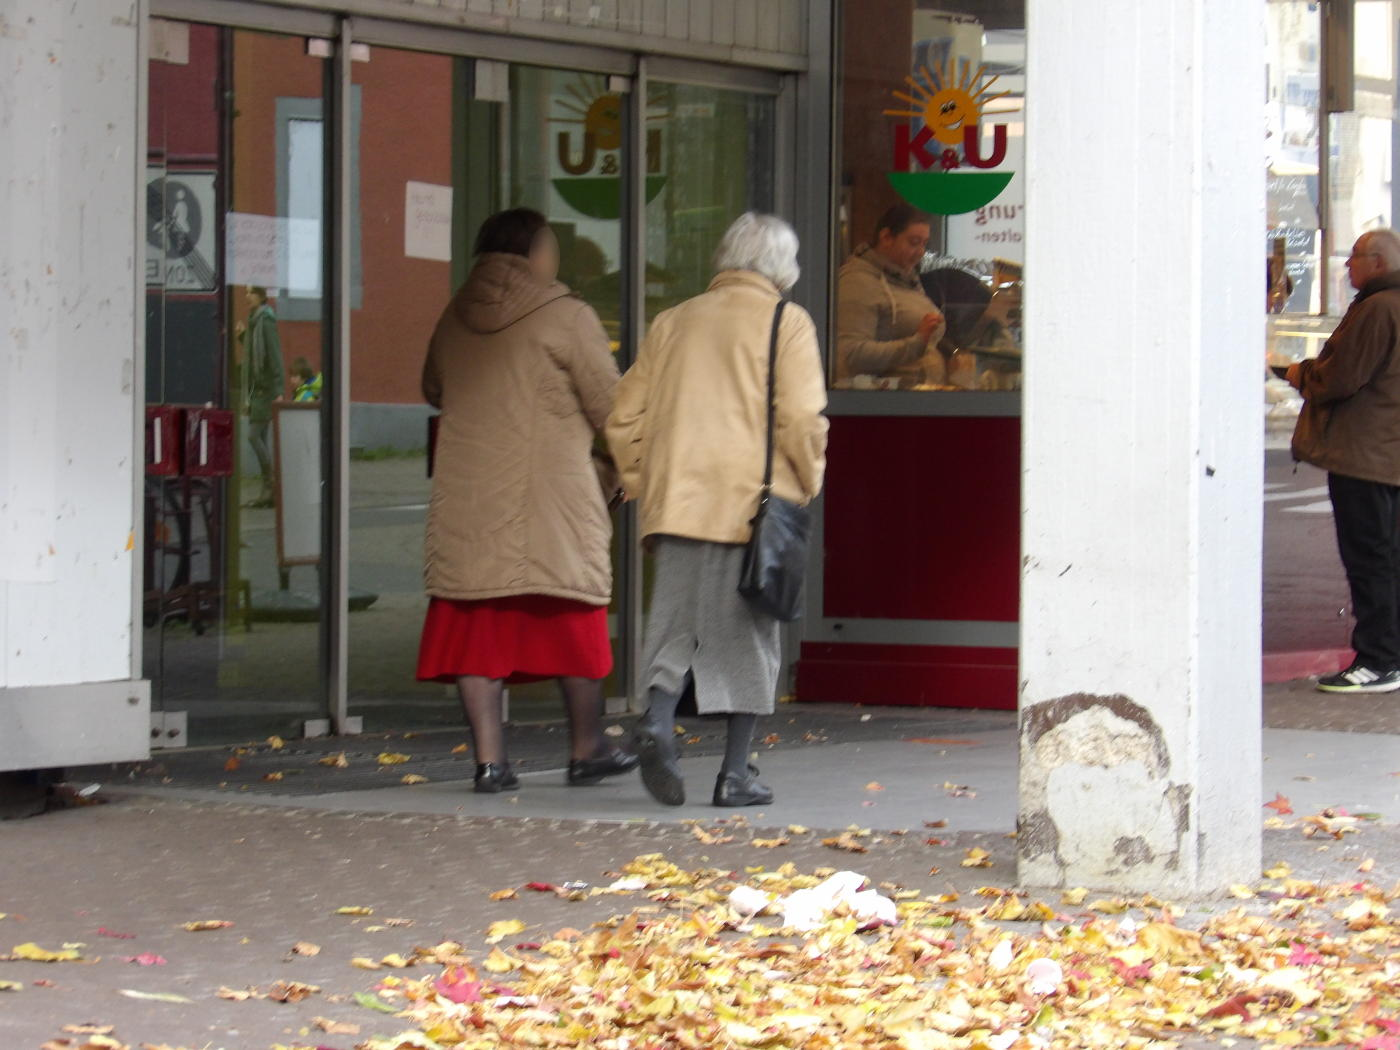 Wiesloch: Jehovah's Witnesses cheat as always